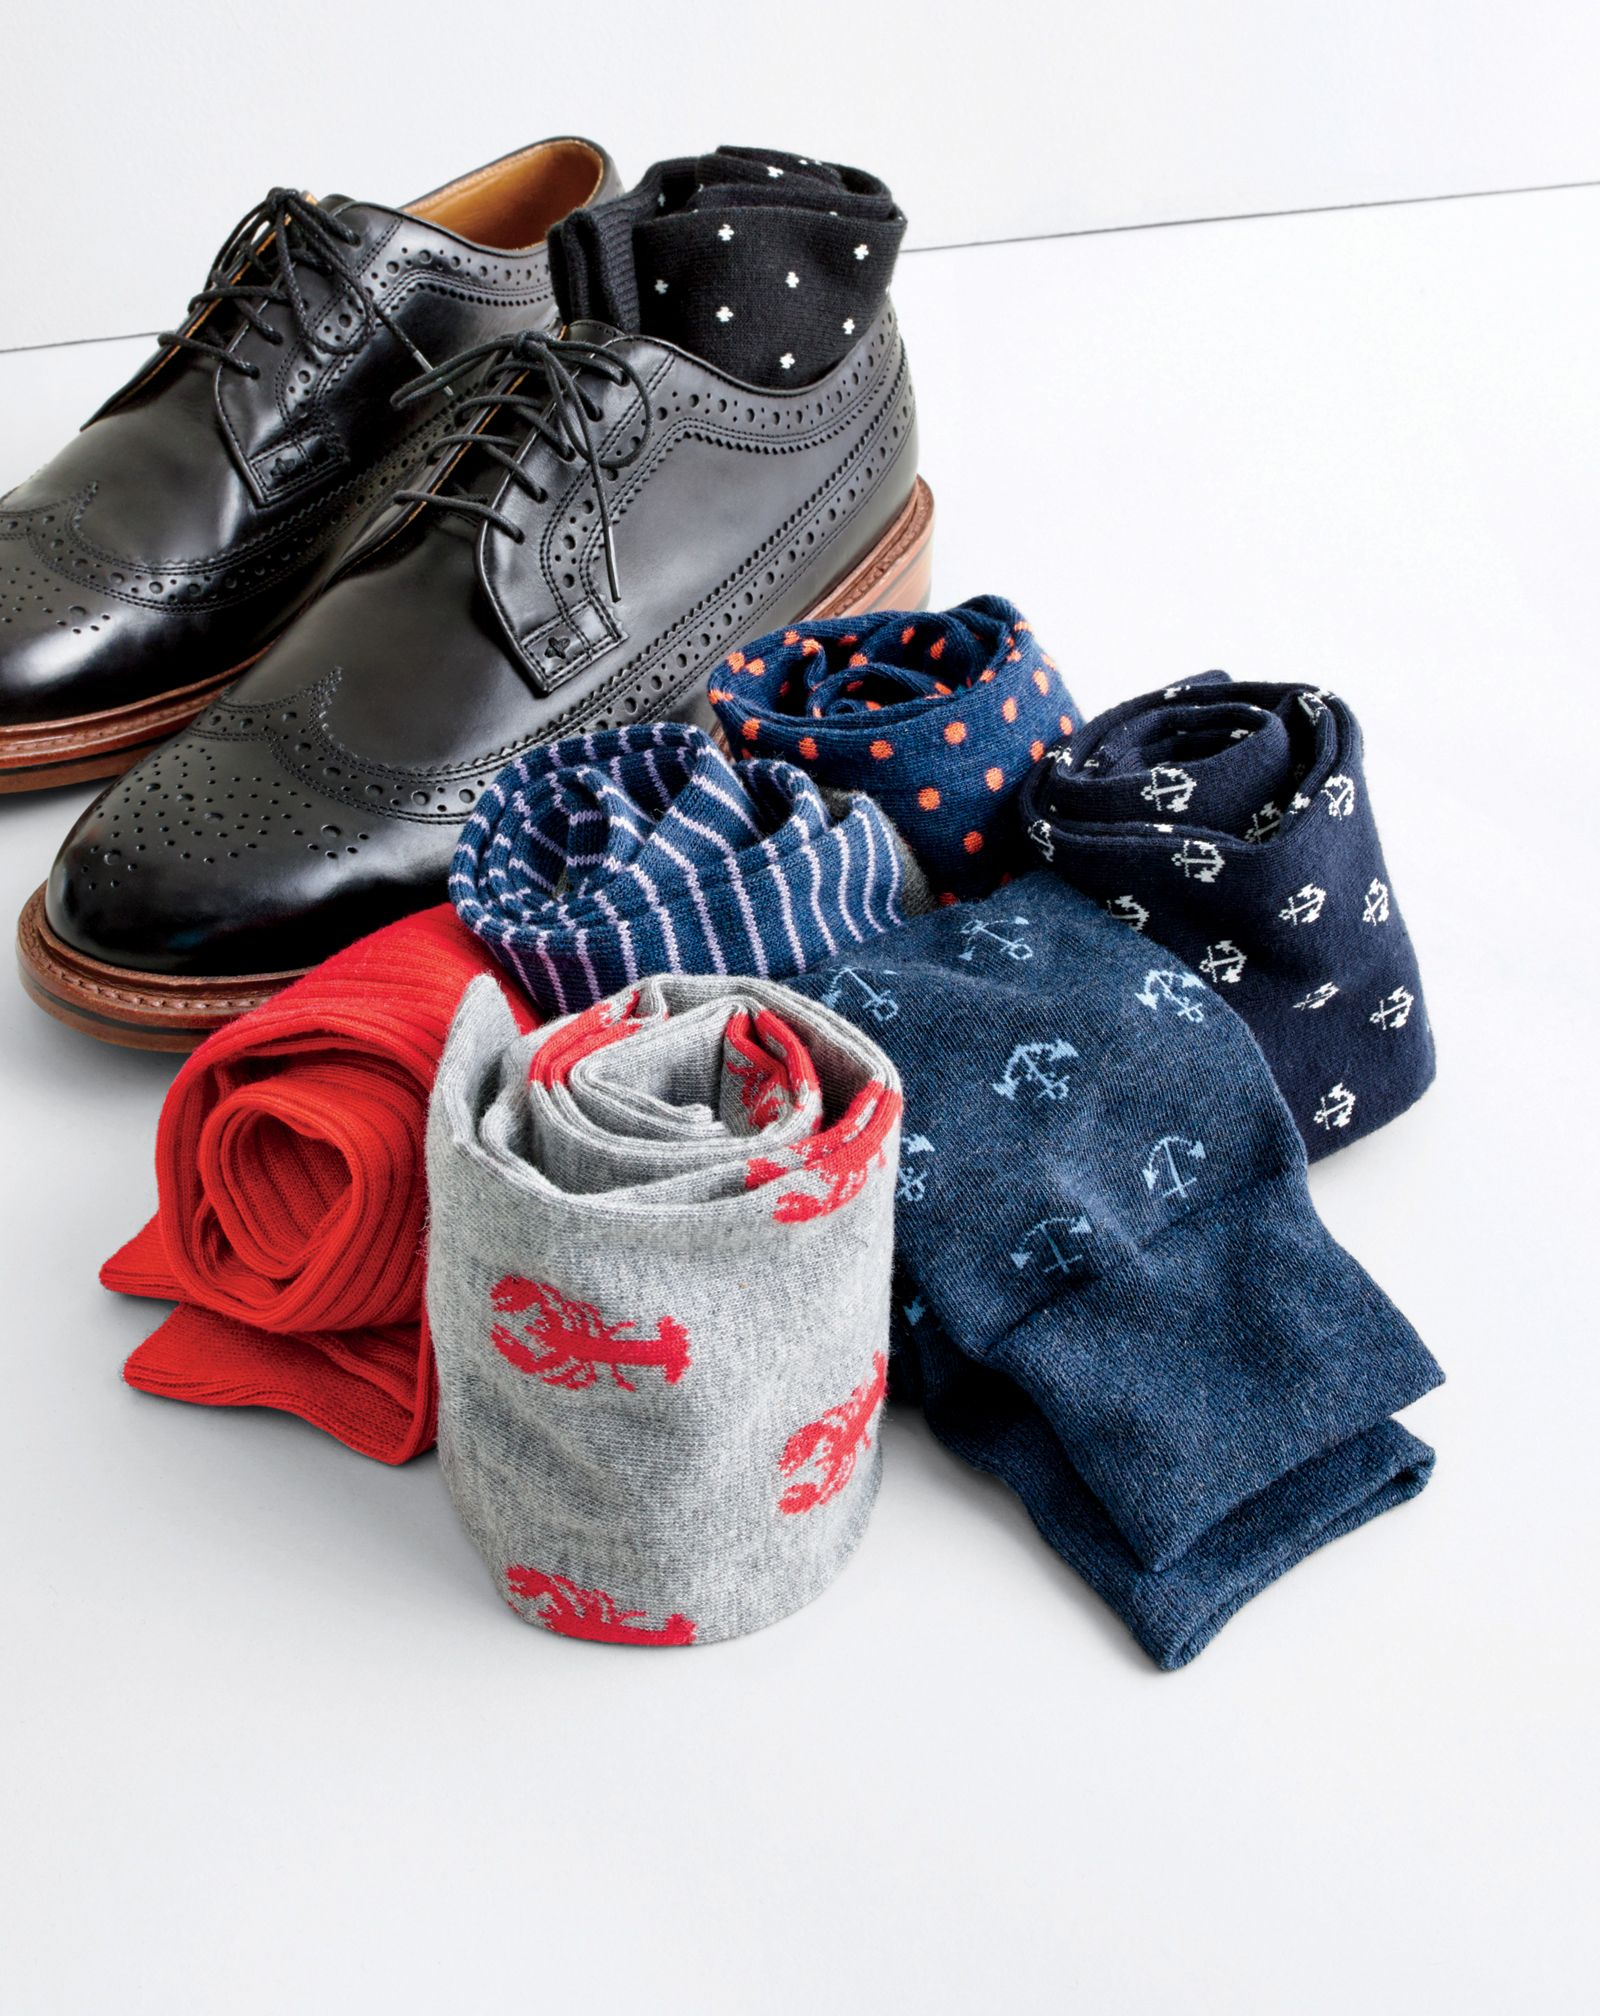 cc187f47a0b J.Crew men s socks and Ludlow wing tips. To pre-order